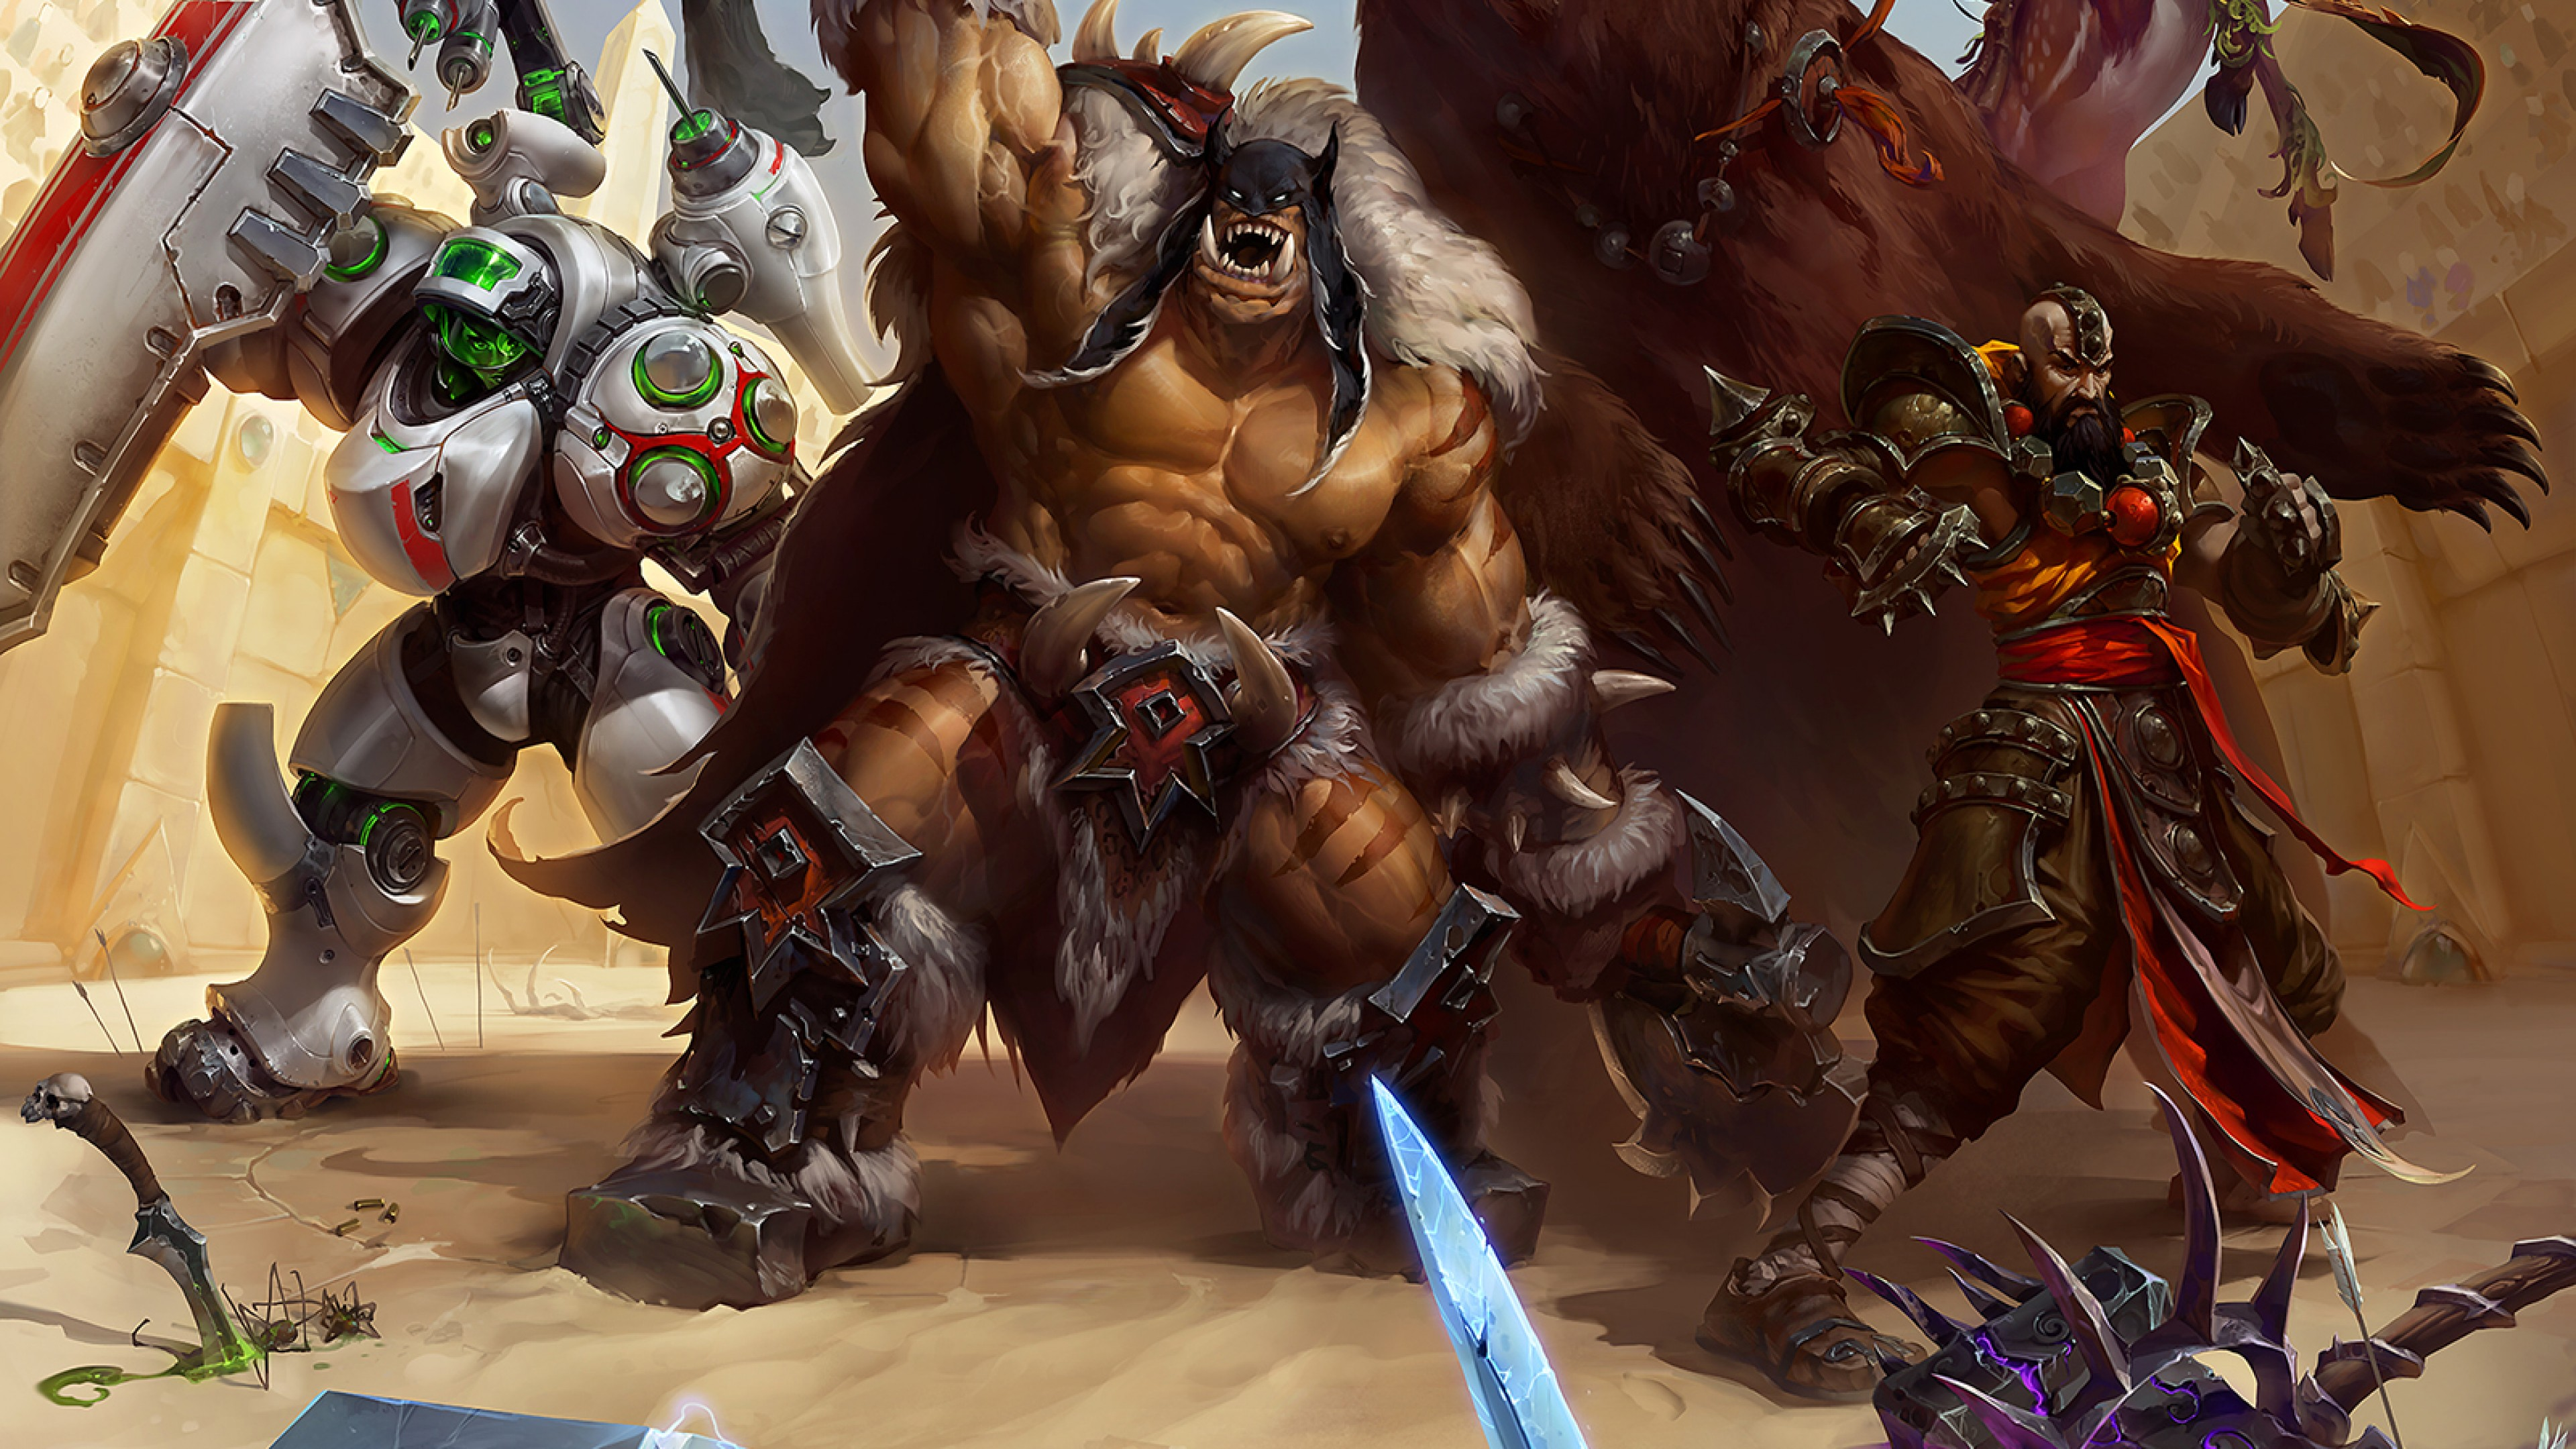 heroes of the storm wallpaper background hd 61885